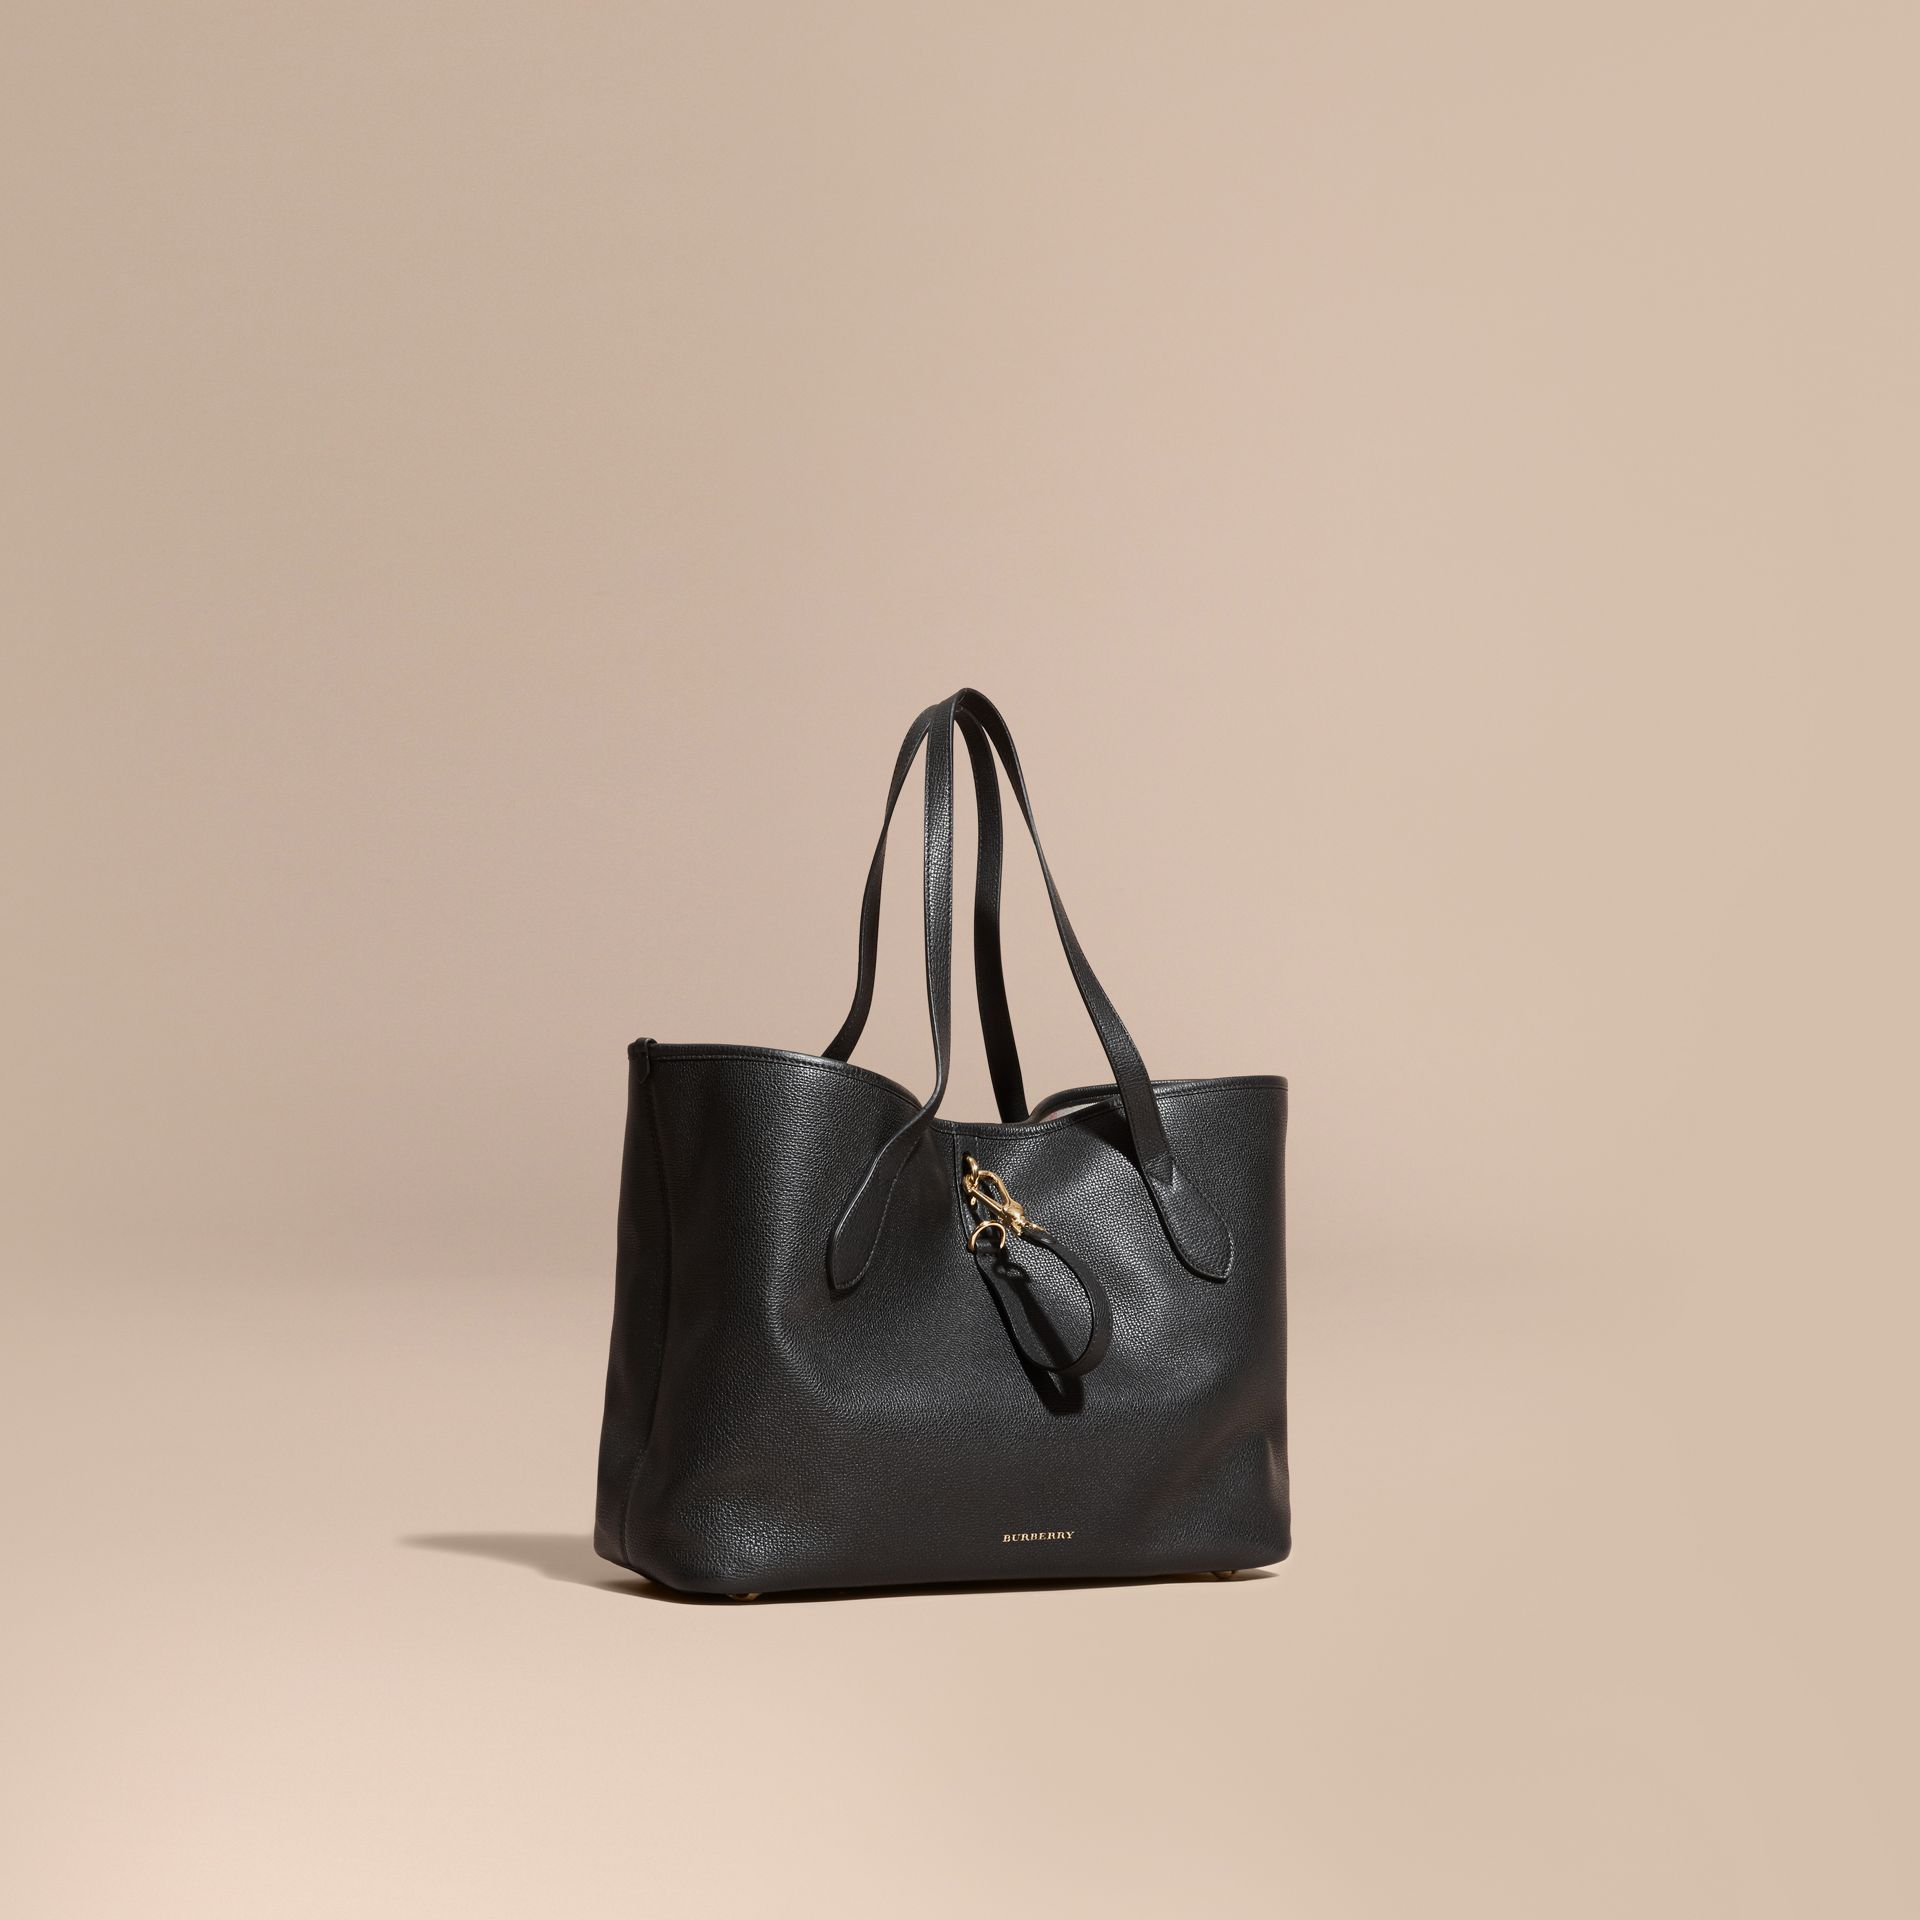 Sac tote medium en cuir grainé Noir - photo de la galerie 1